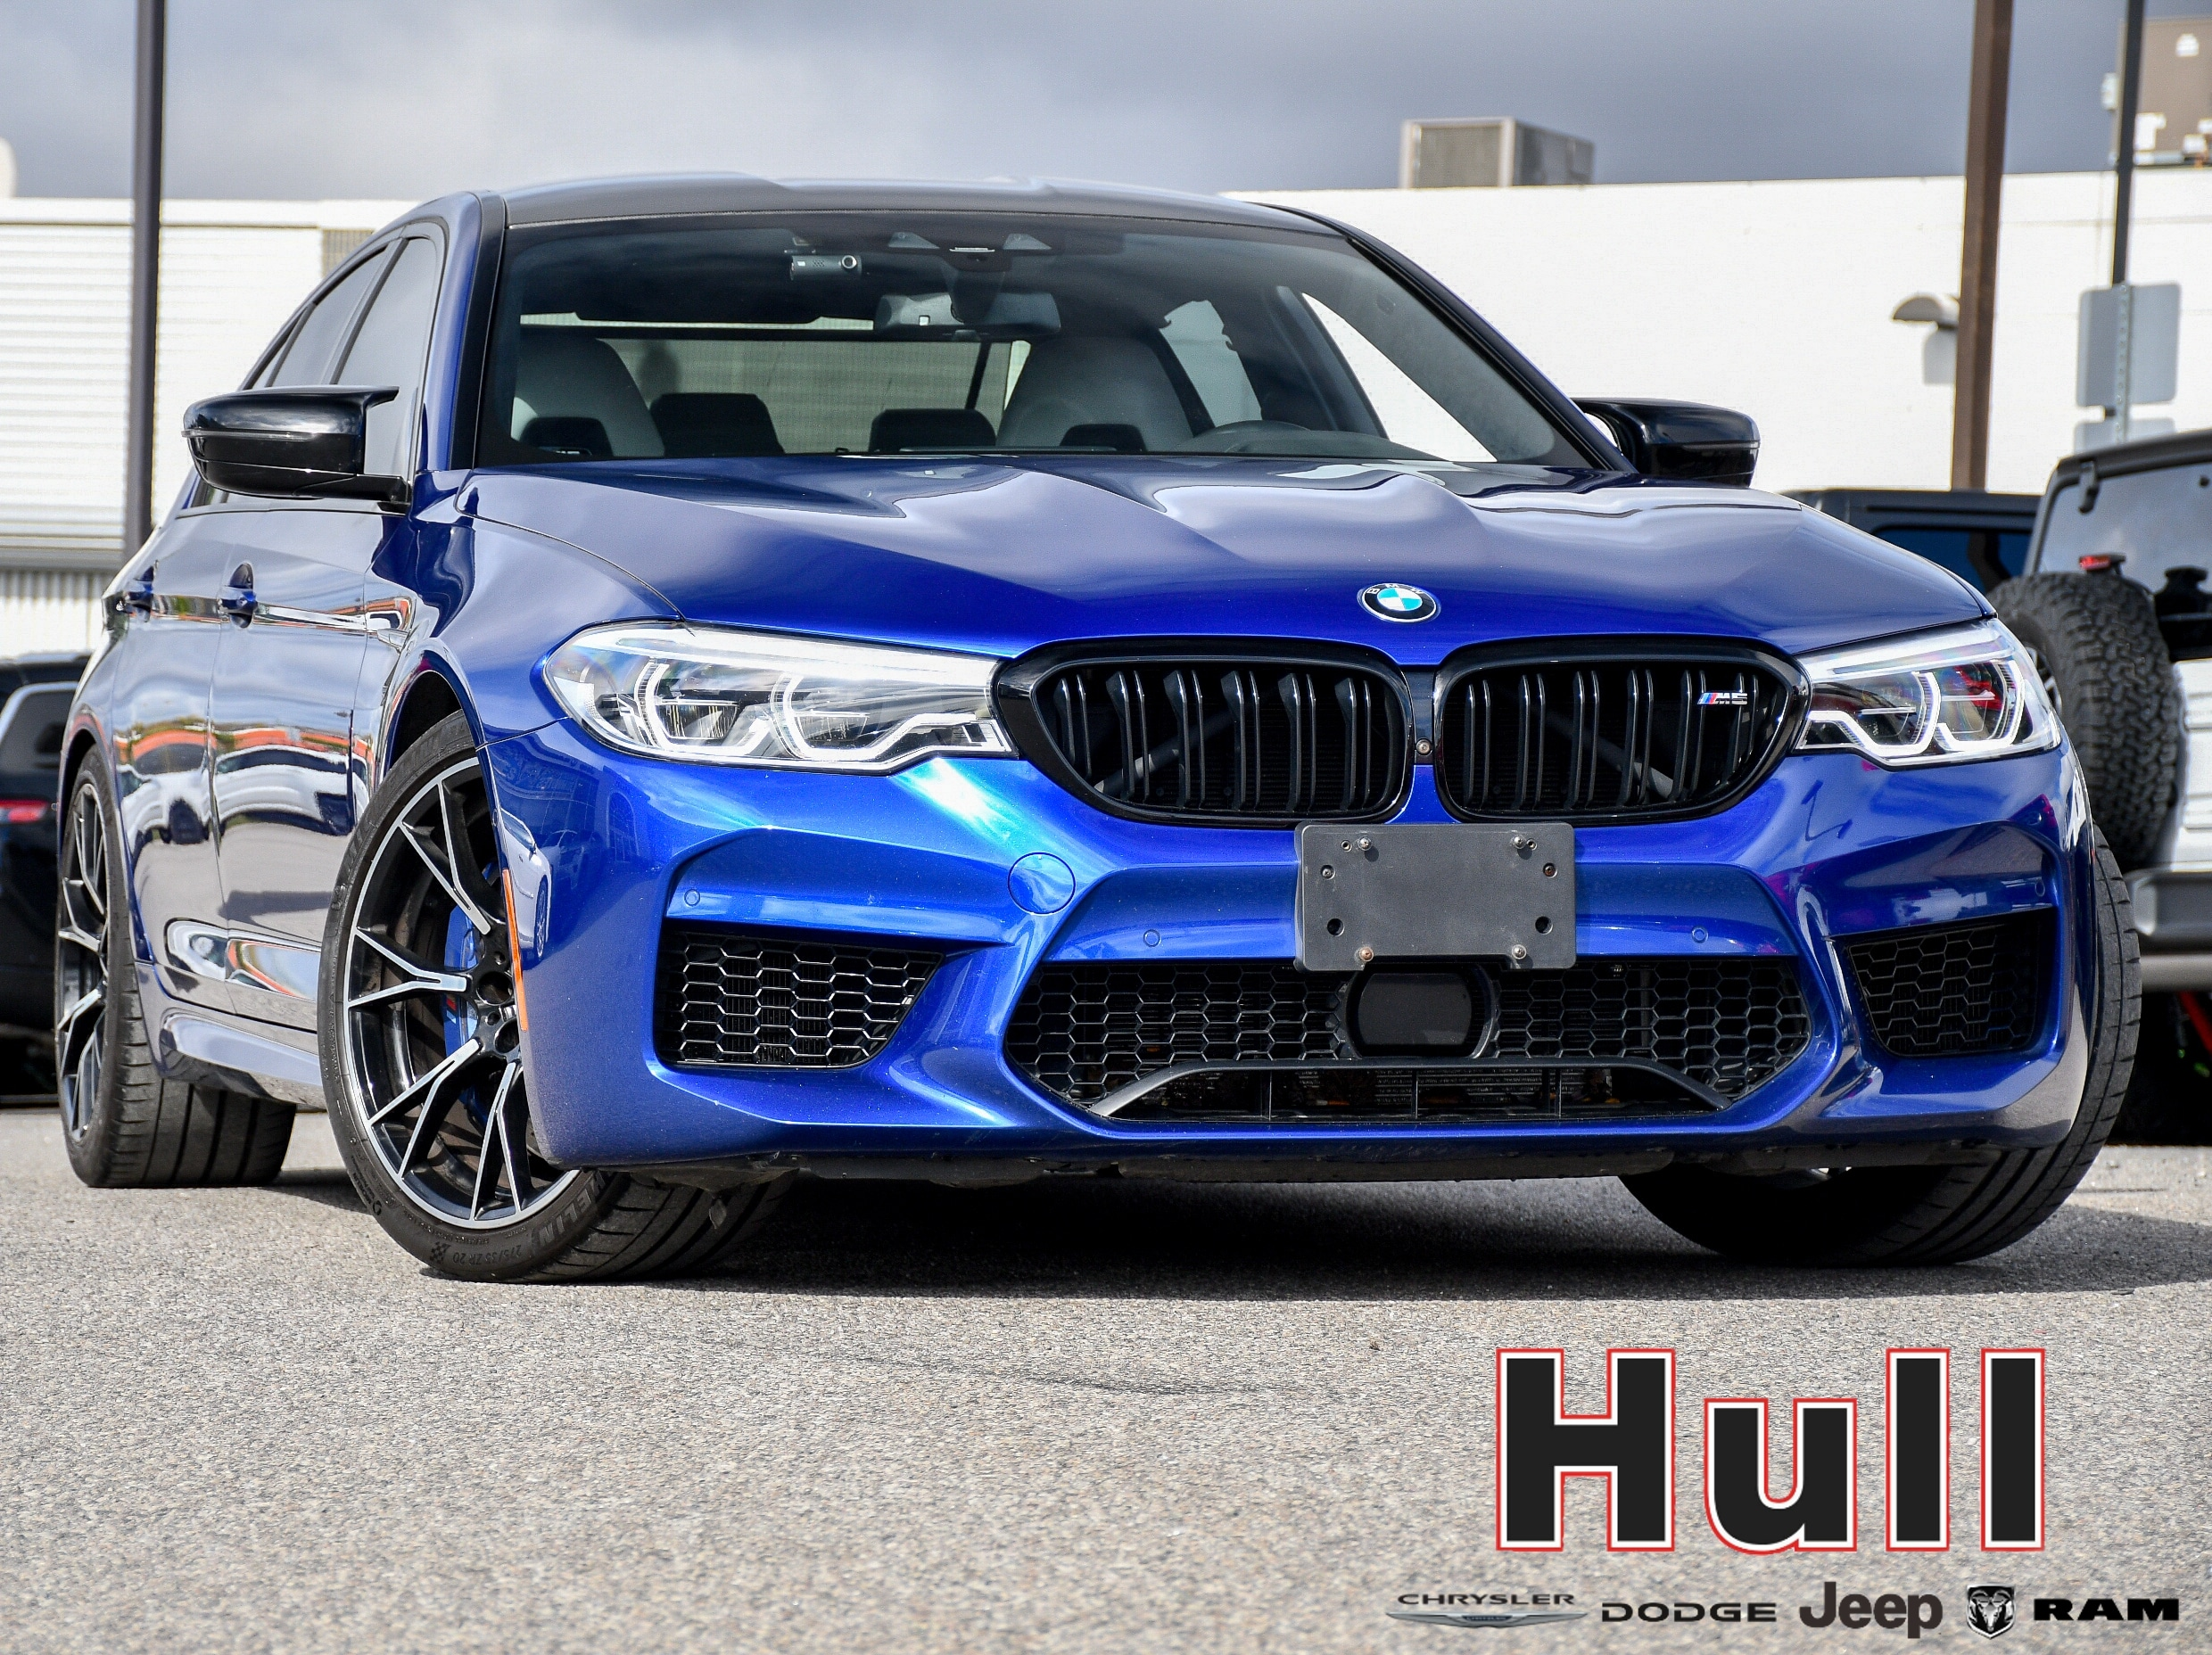 BMW Série 5 M 2019 Competition - ACC/600 HP/CLEAN CARFAX/FULLY L